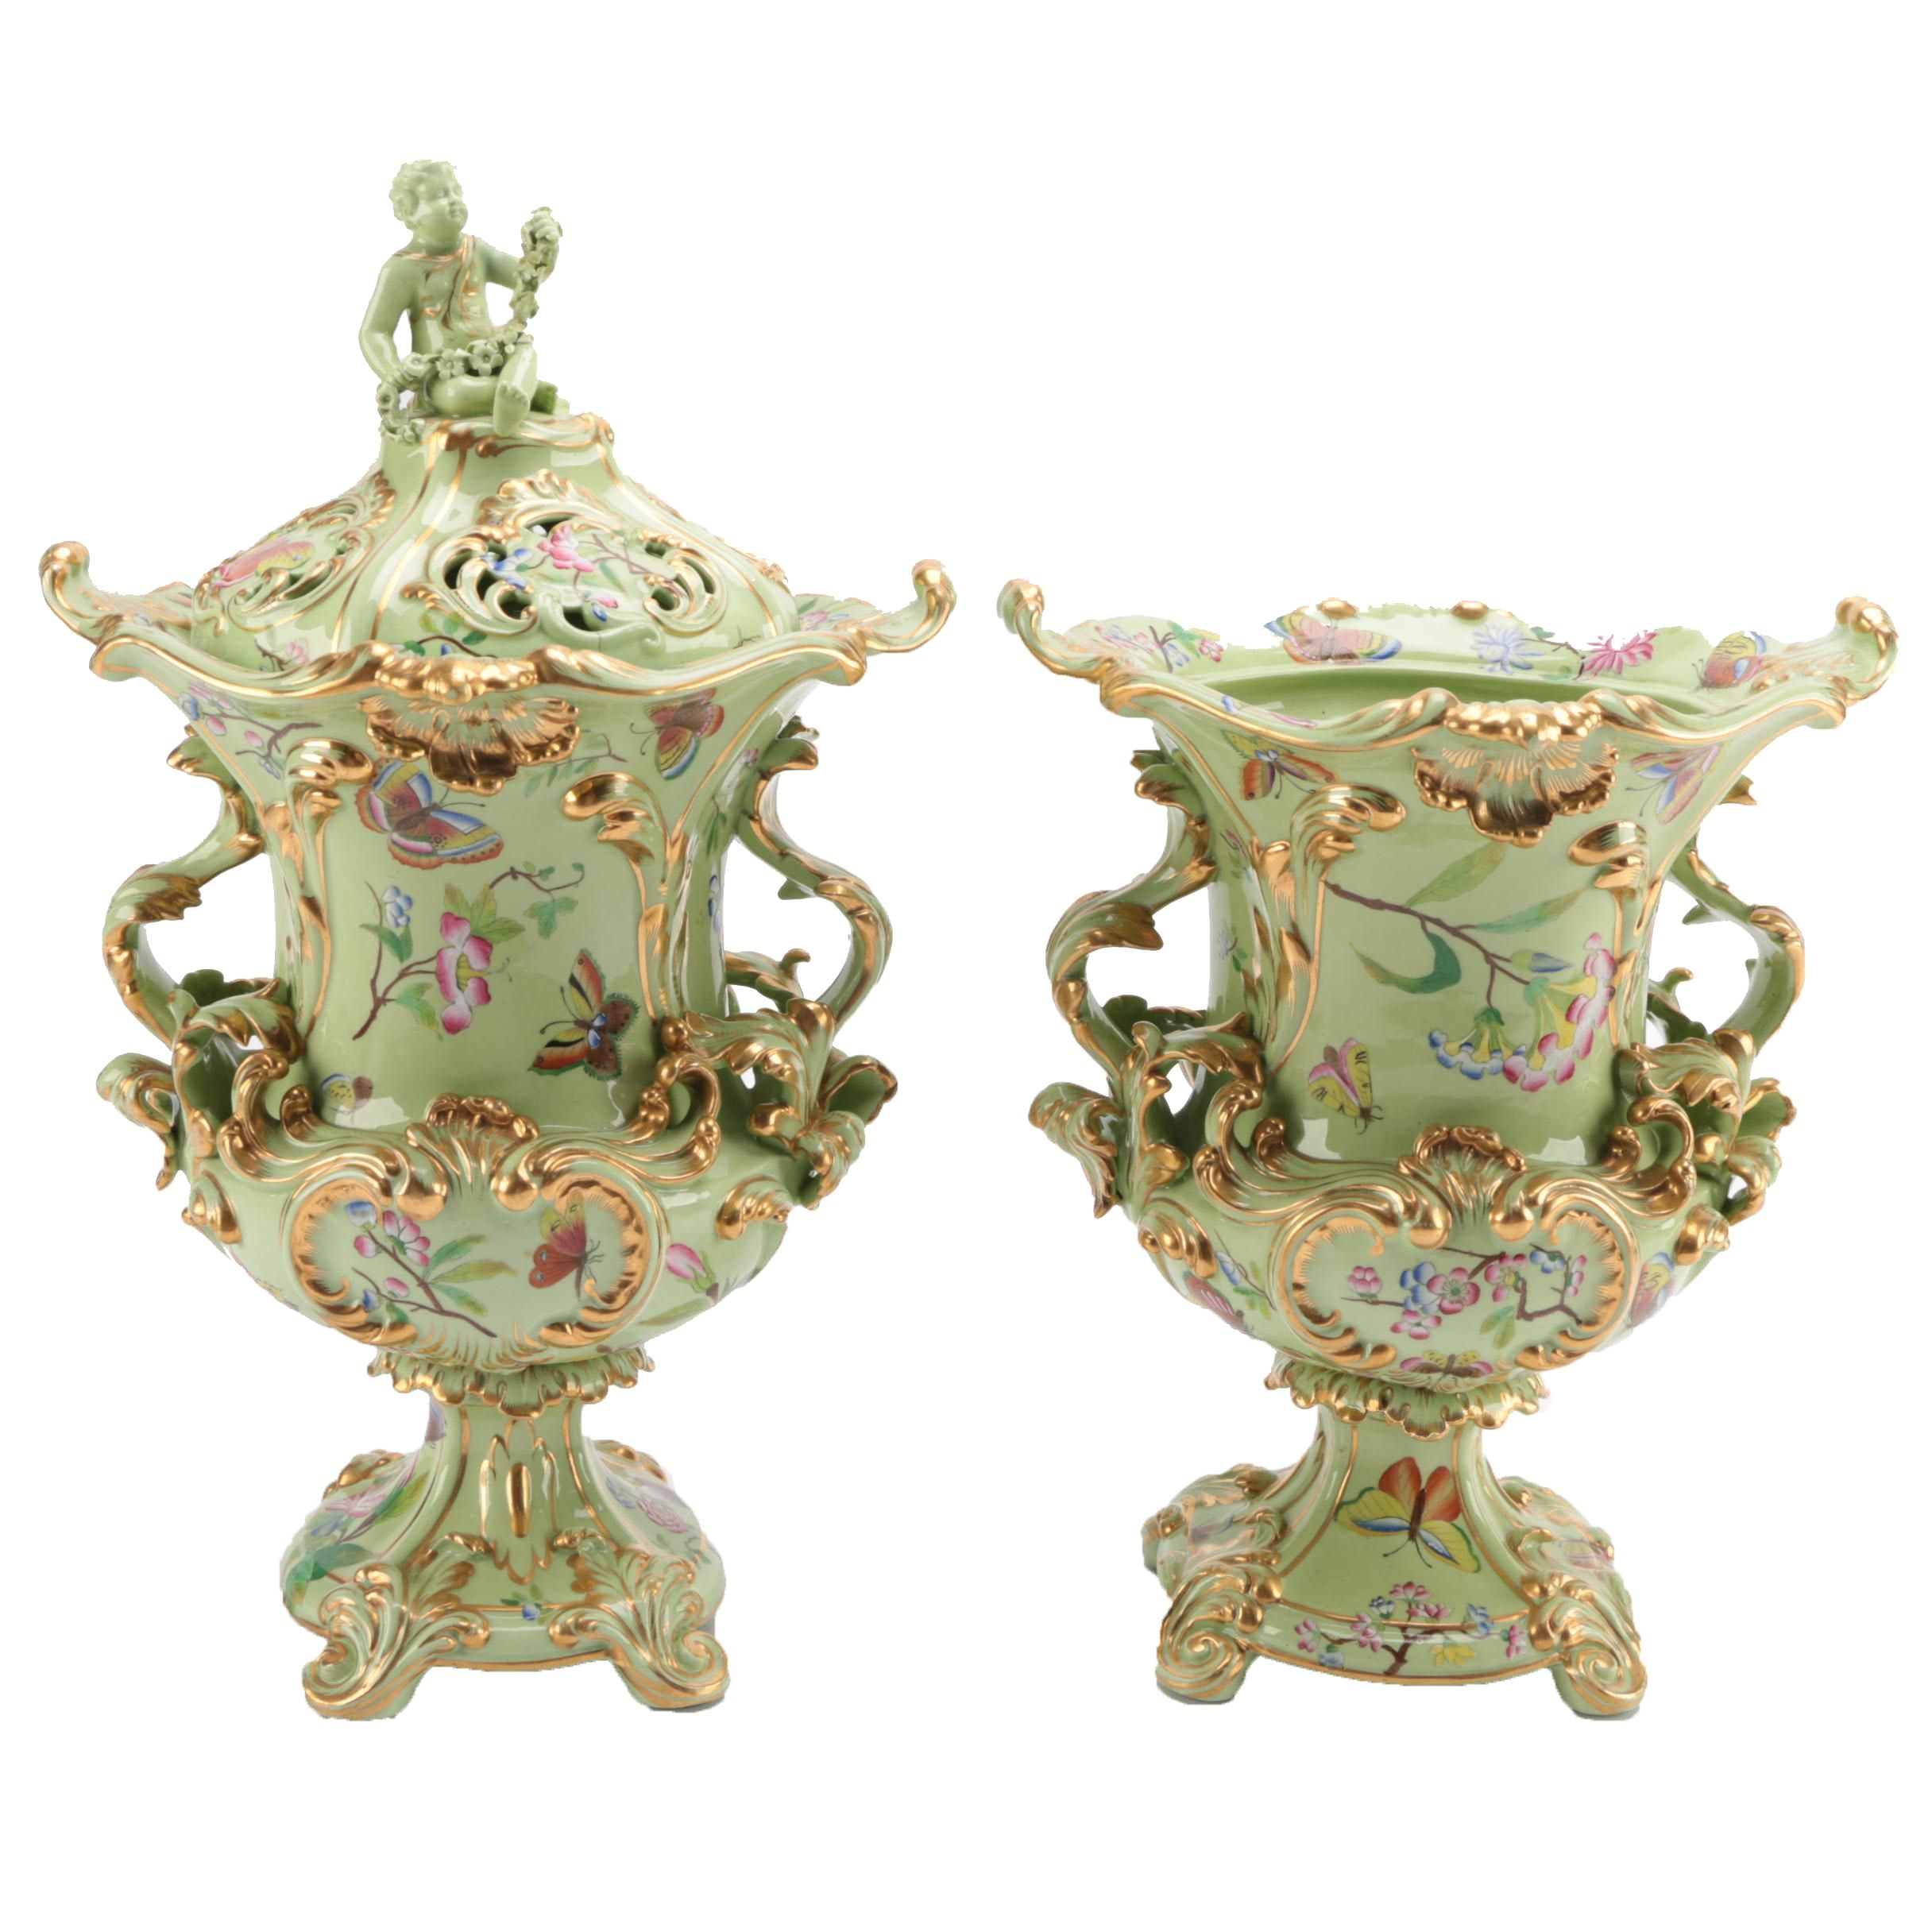 Hand Painted Porcelain Urns